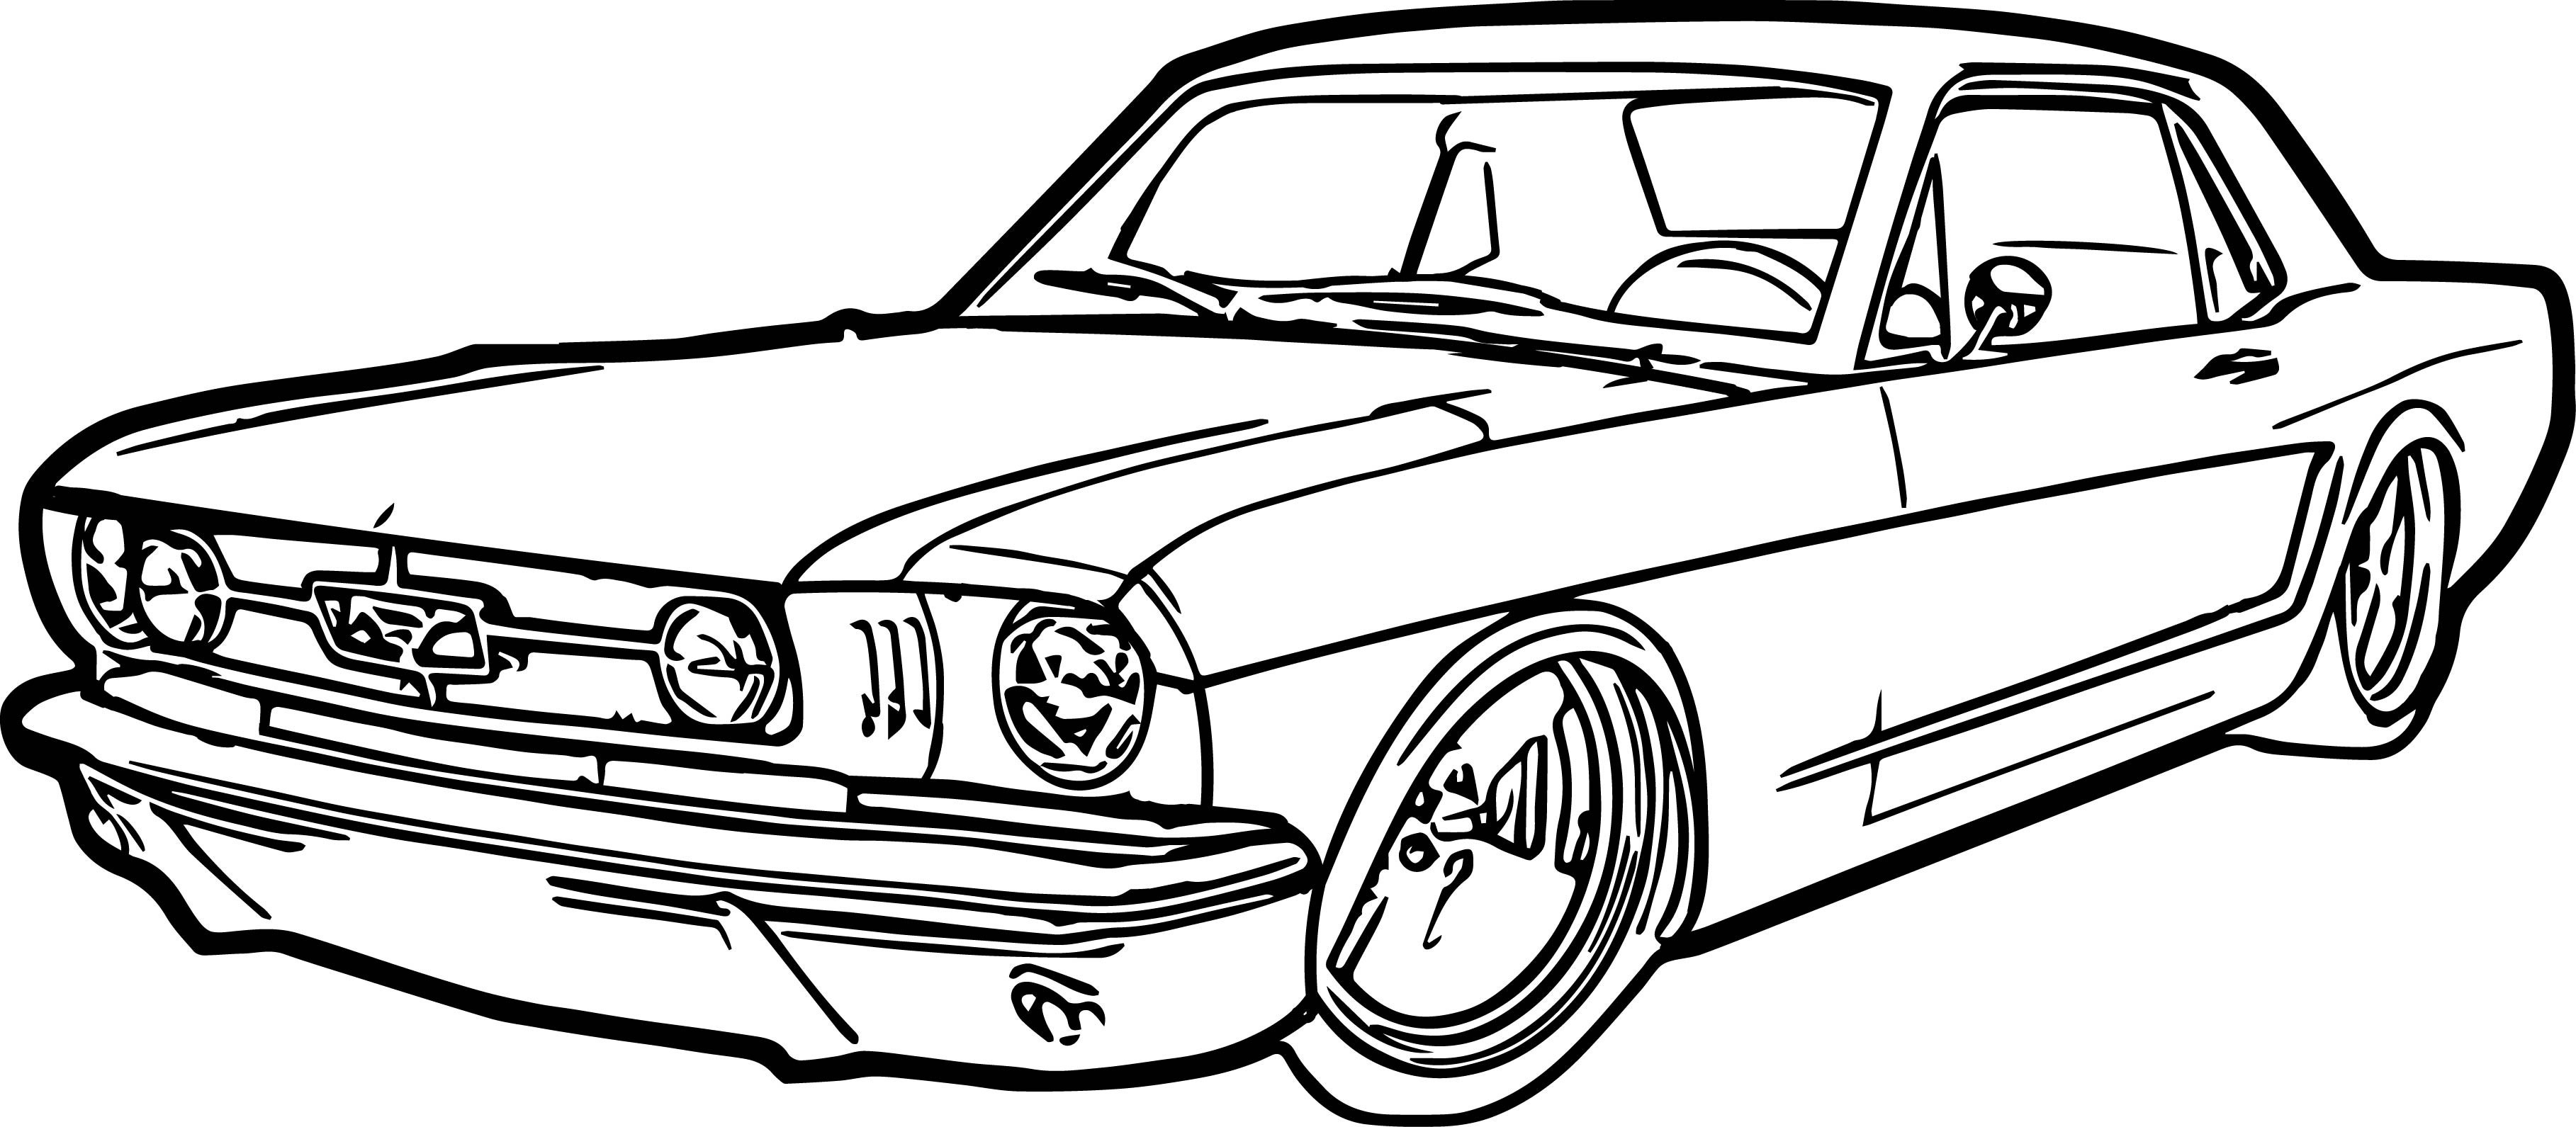 Coloring Pages Of Cars Coloring Page Awesome Car Coloring Sheets